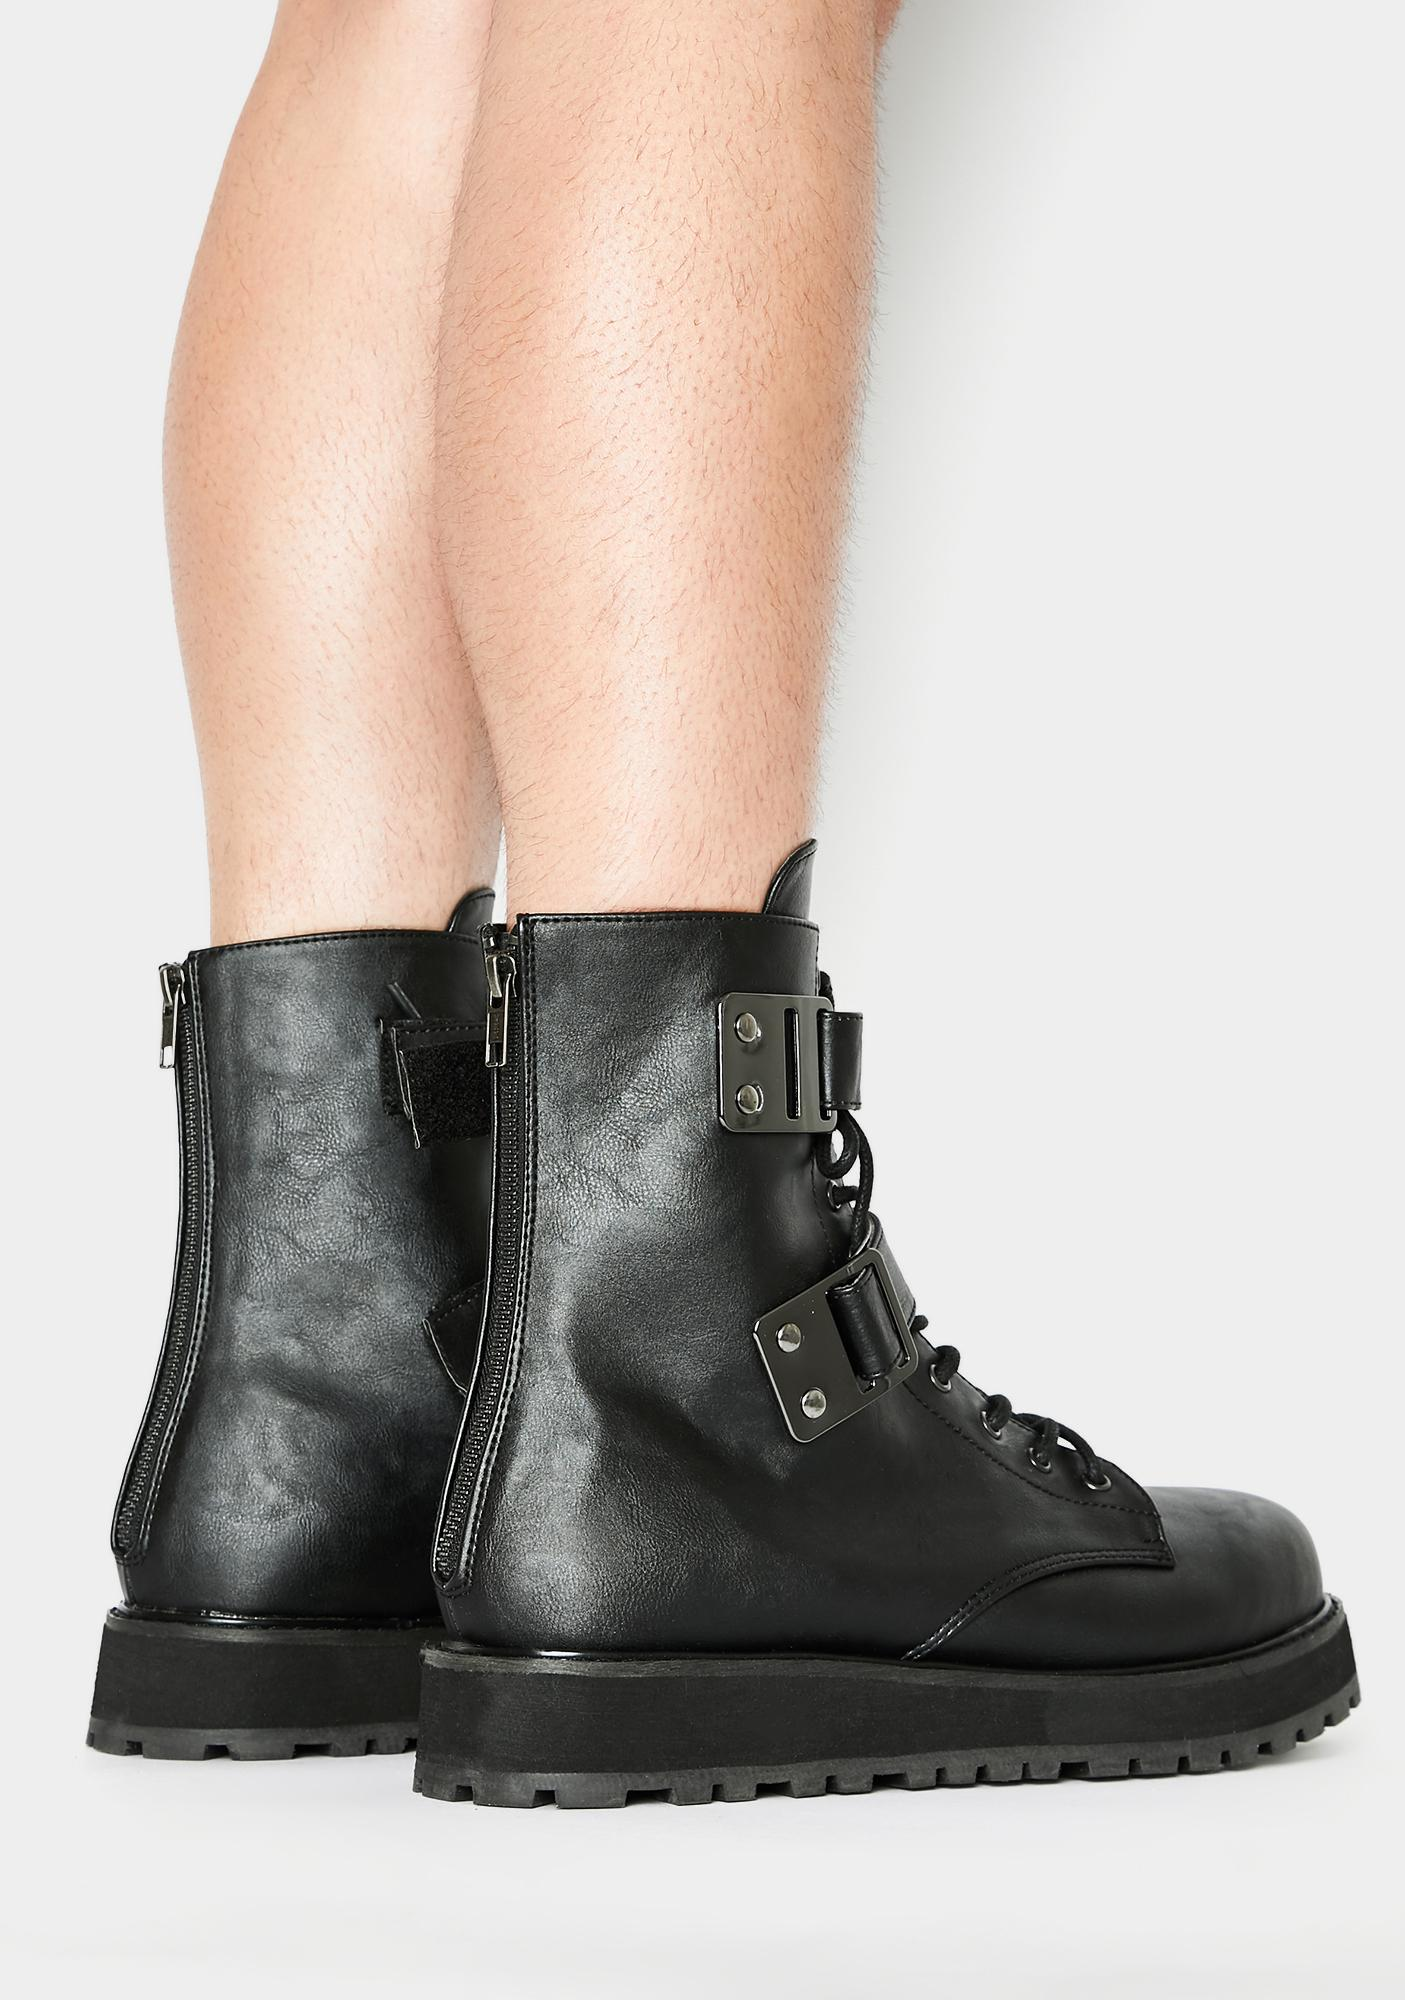 Demonia Valor Ankle Boots